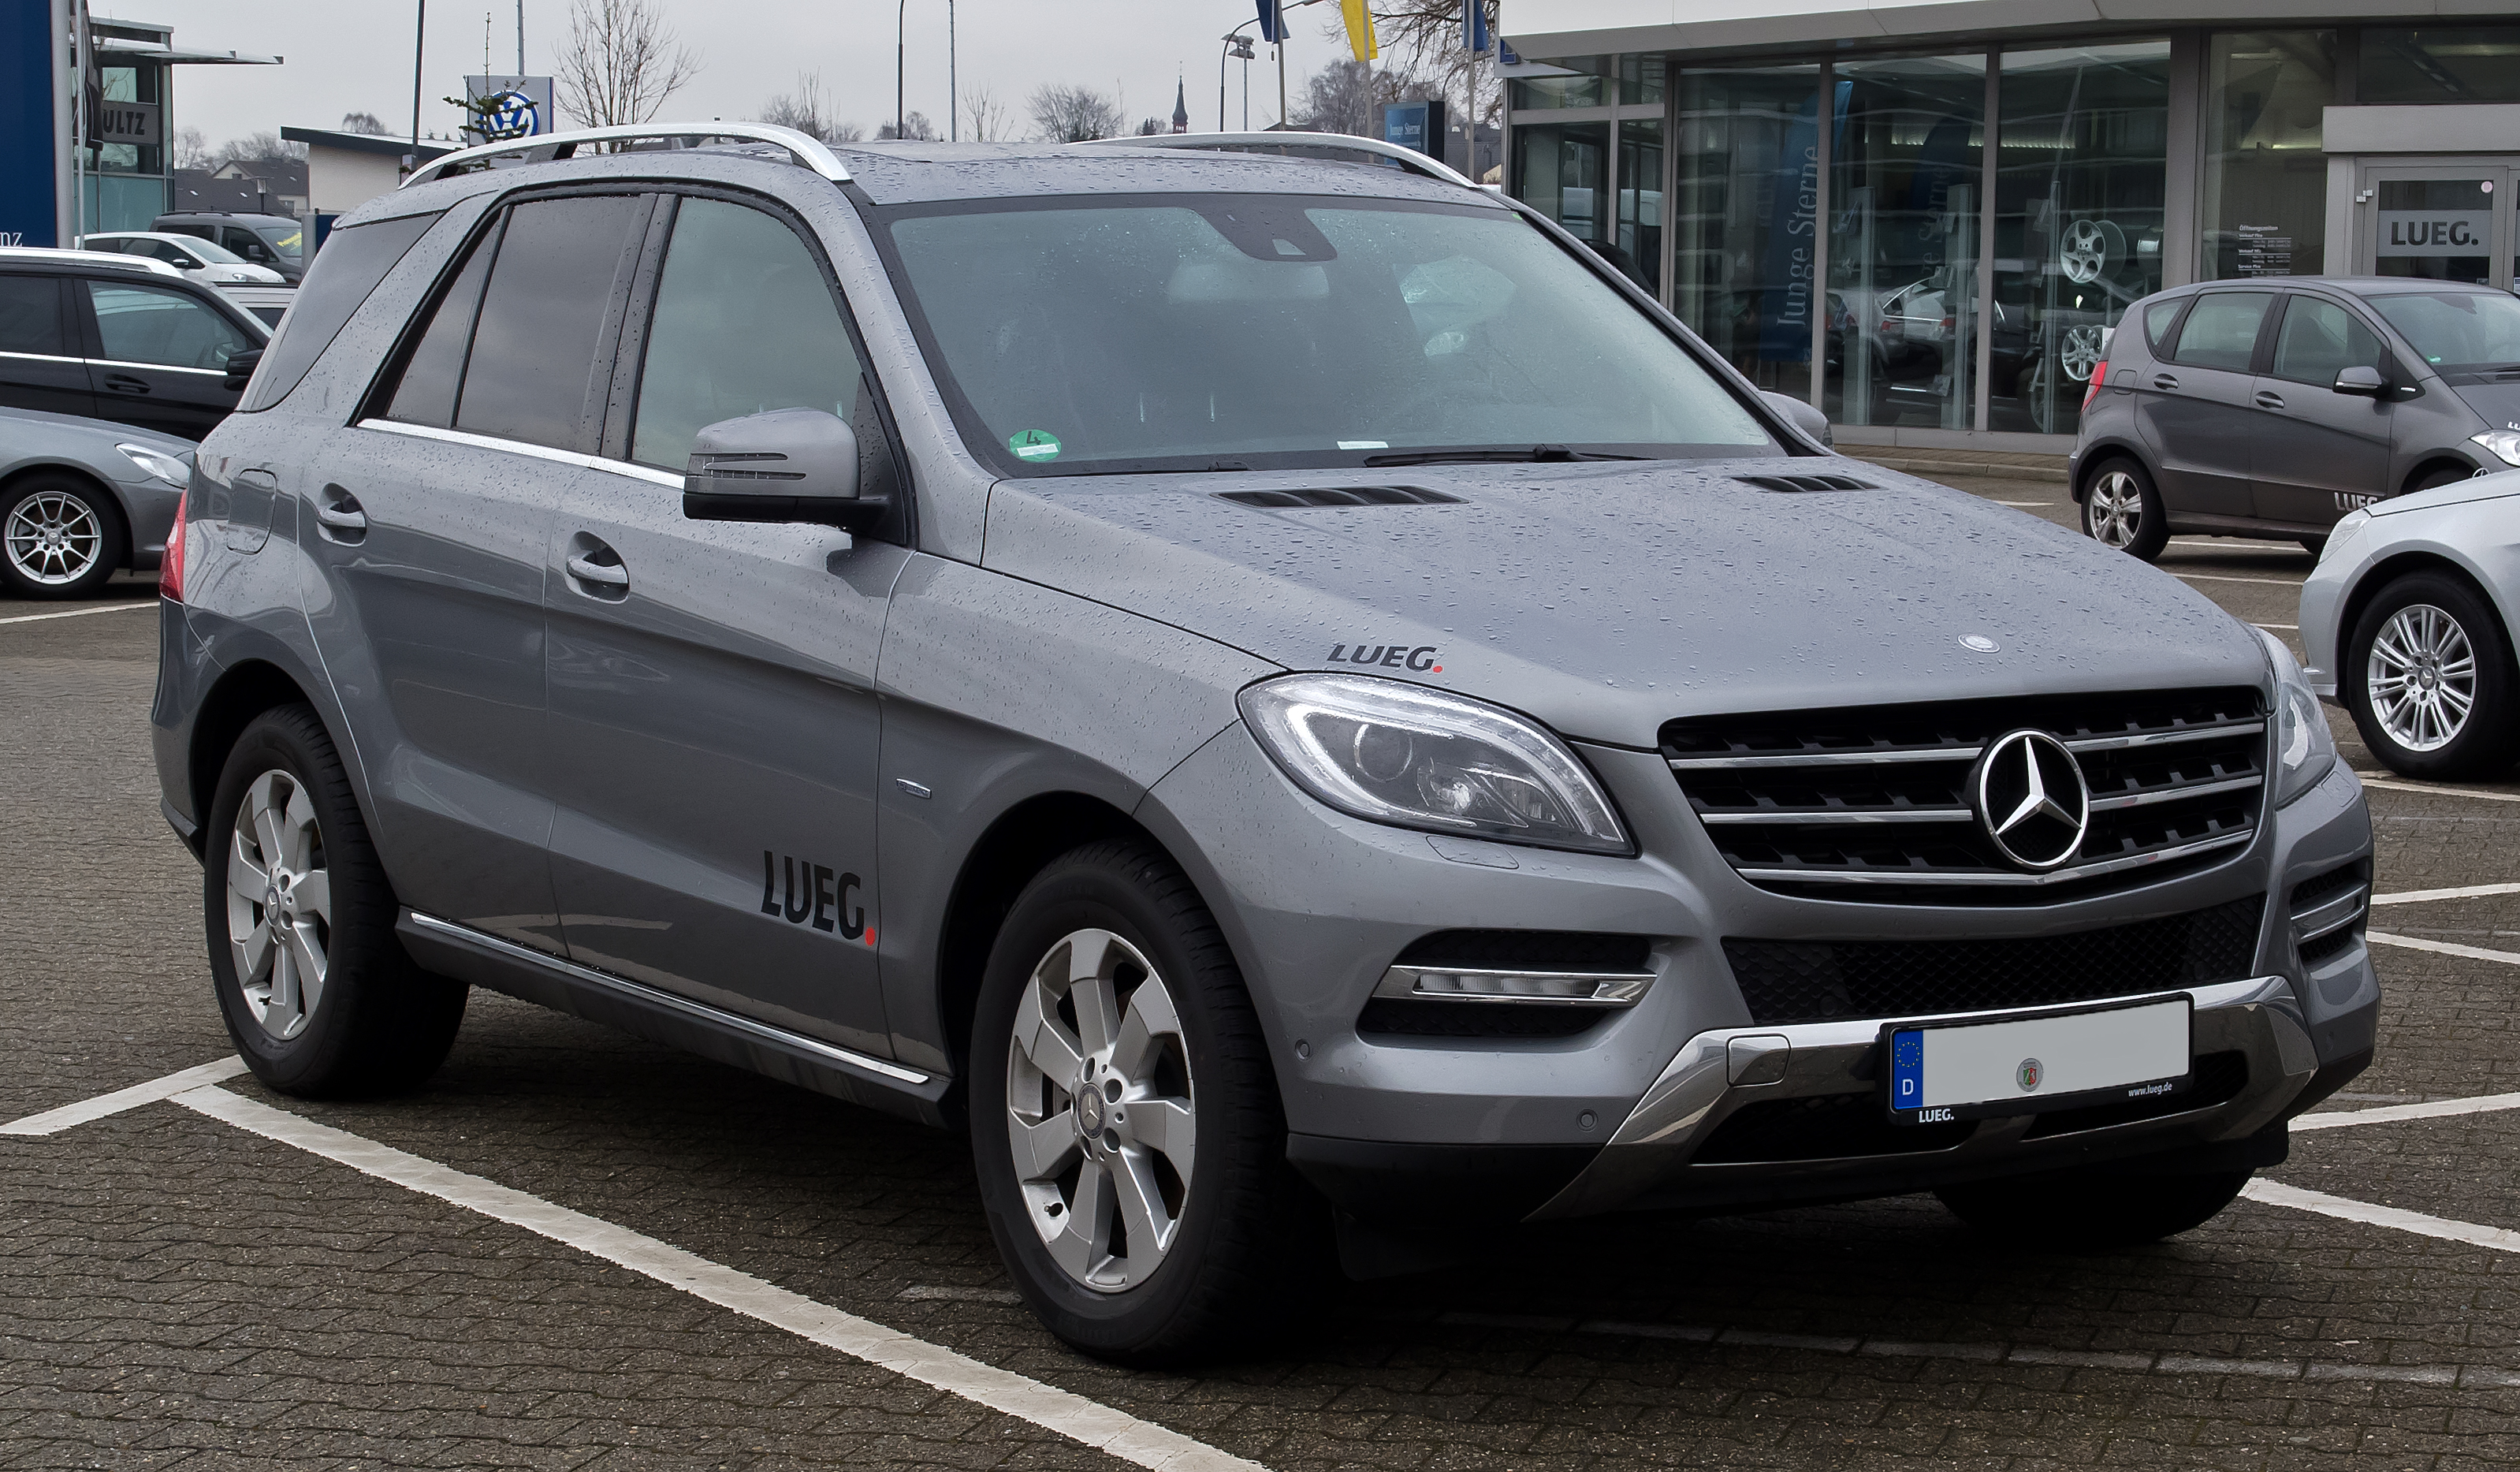 Description Mercedes-Benz ML 250 BlueTEC (W 166) – Frontansicht, 26